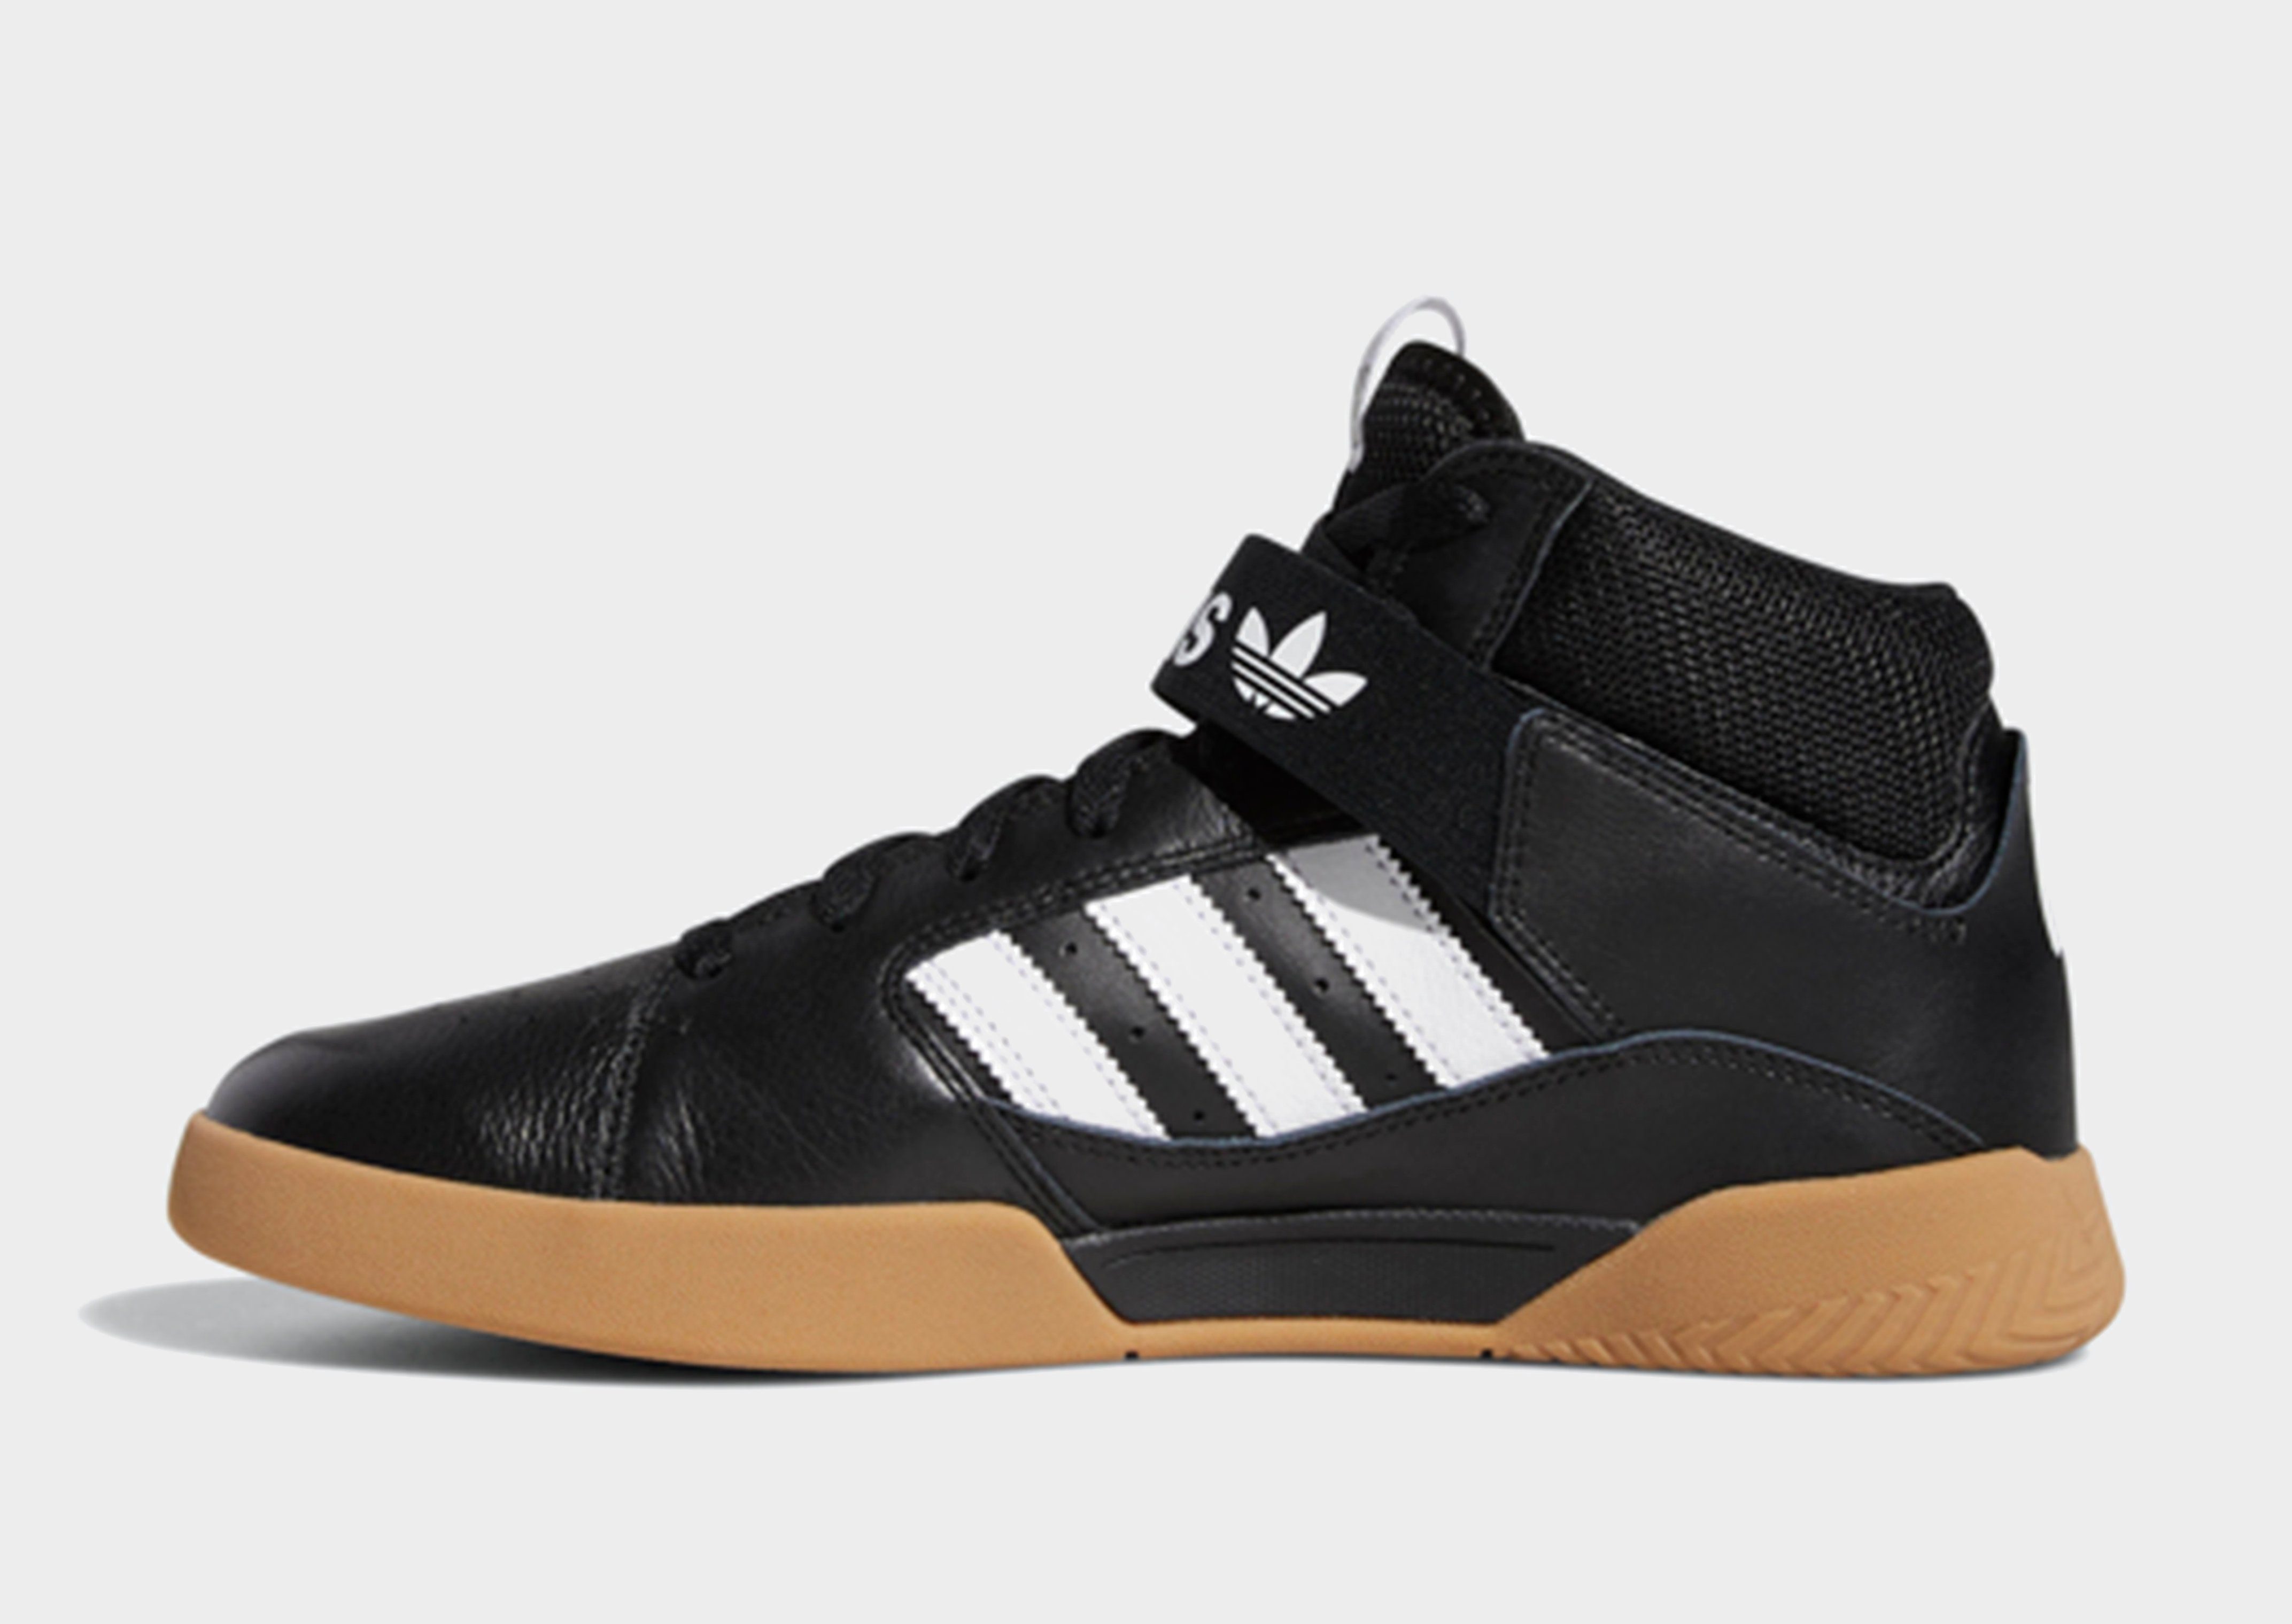 adidas Skateboarding VRX Cup Mid Shoes | JD Sports